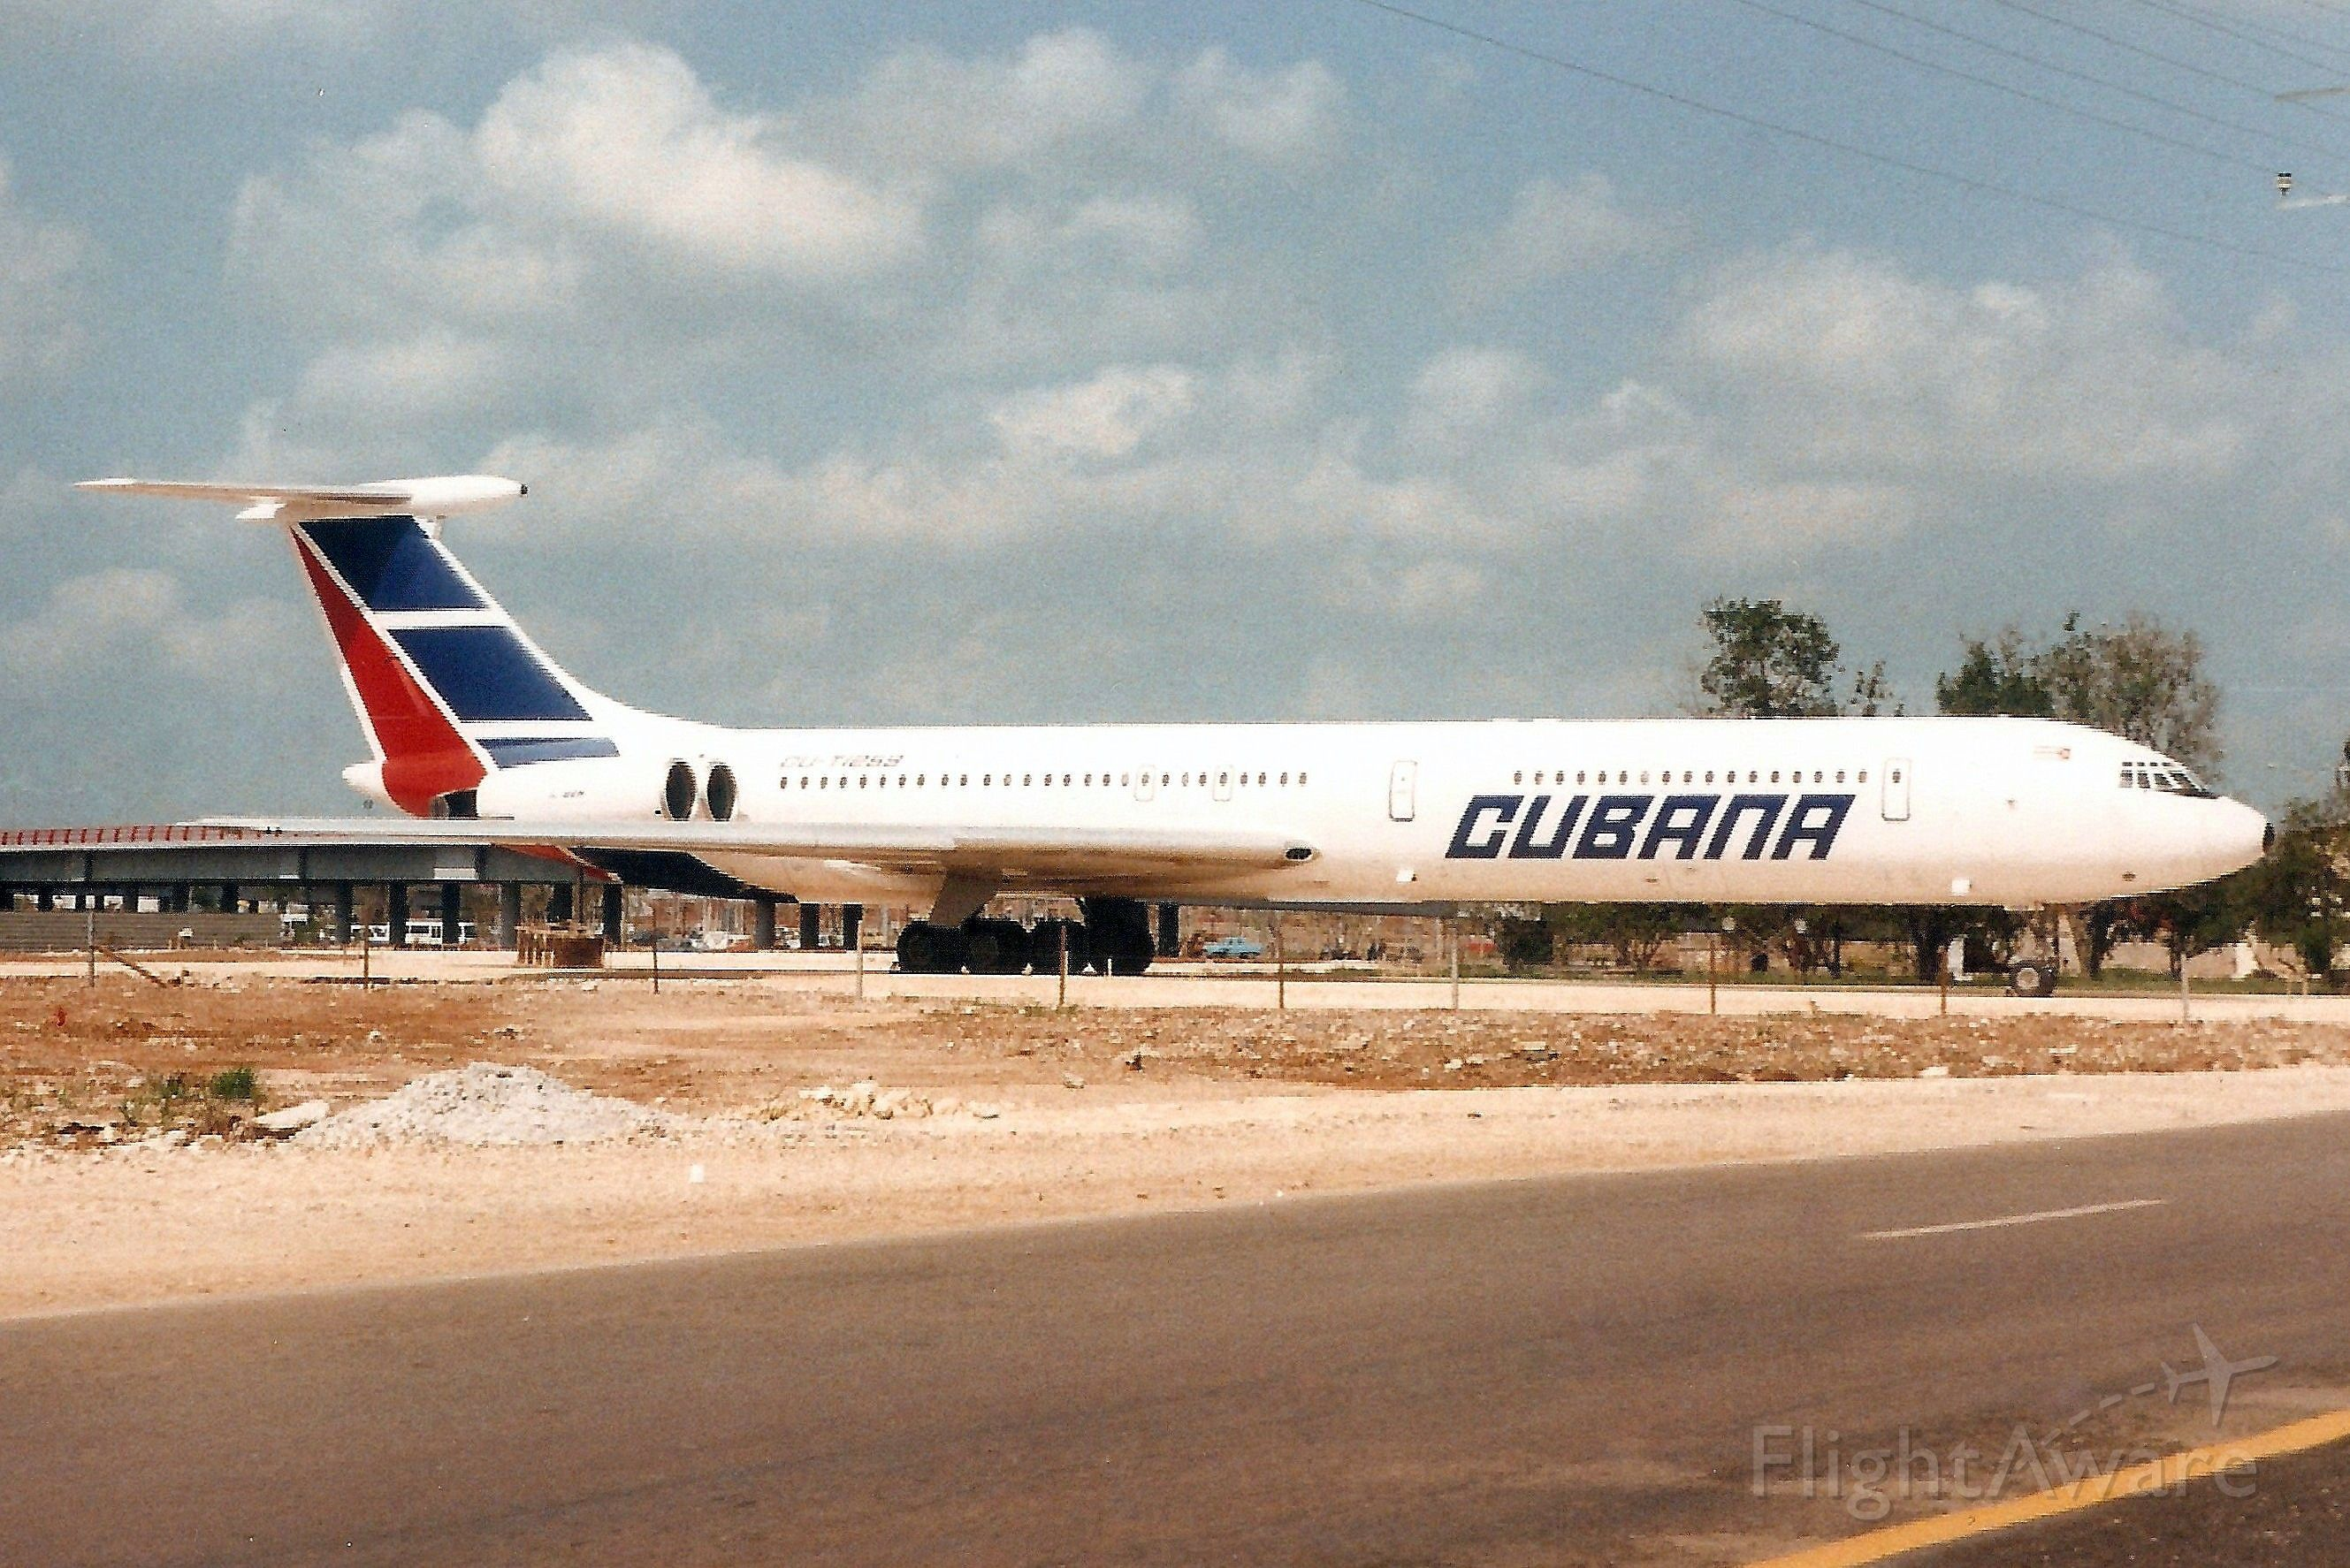 Ilyushin Il-62 (CUT1259) - Seen here on 8-May-98.br /br /With Cubana from Jul-84 to Mar-98.br /Broken up at MUHA.